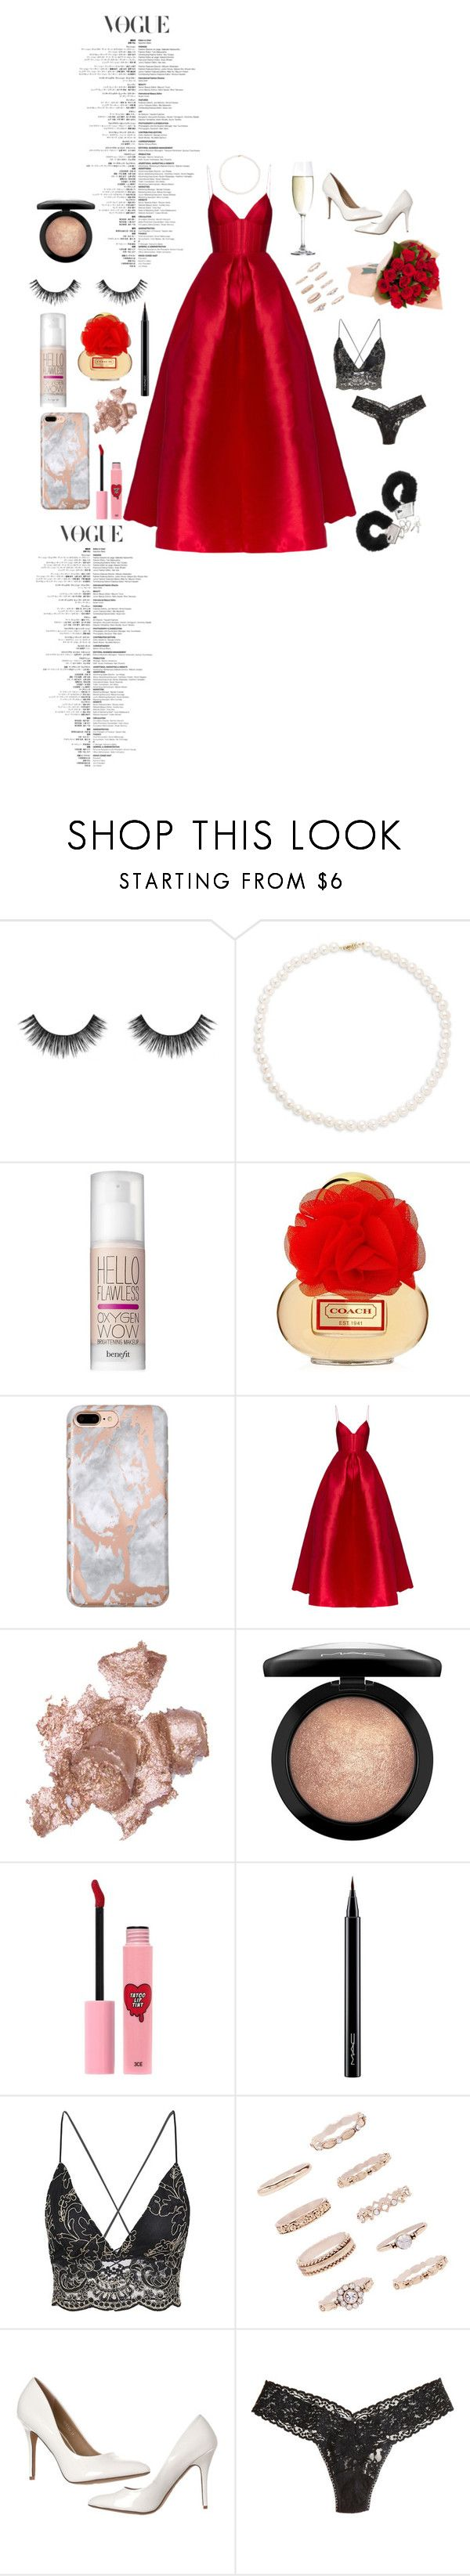 """Anniversary Date"" by lavendersky33 ❤ liked on Polyvore featuring Velour Lashes, Tara, Benefit, Alex Perry, By Terry, MAC Cosmetics, 3 Concept Eyes, Spiegelau, Forever 21 and Hanky Panky"